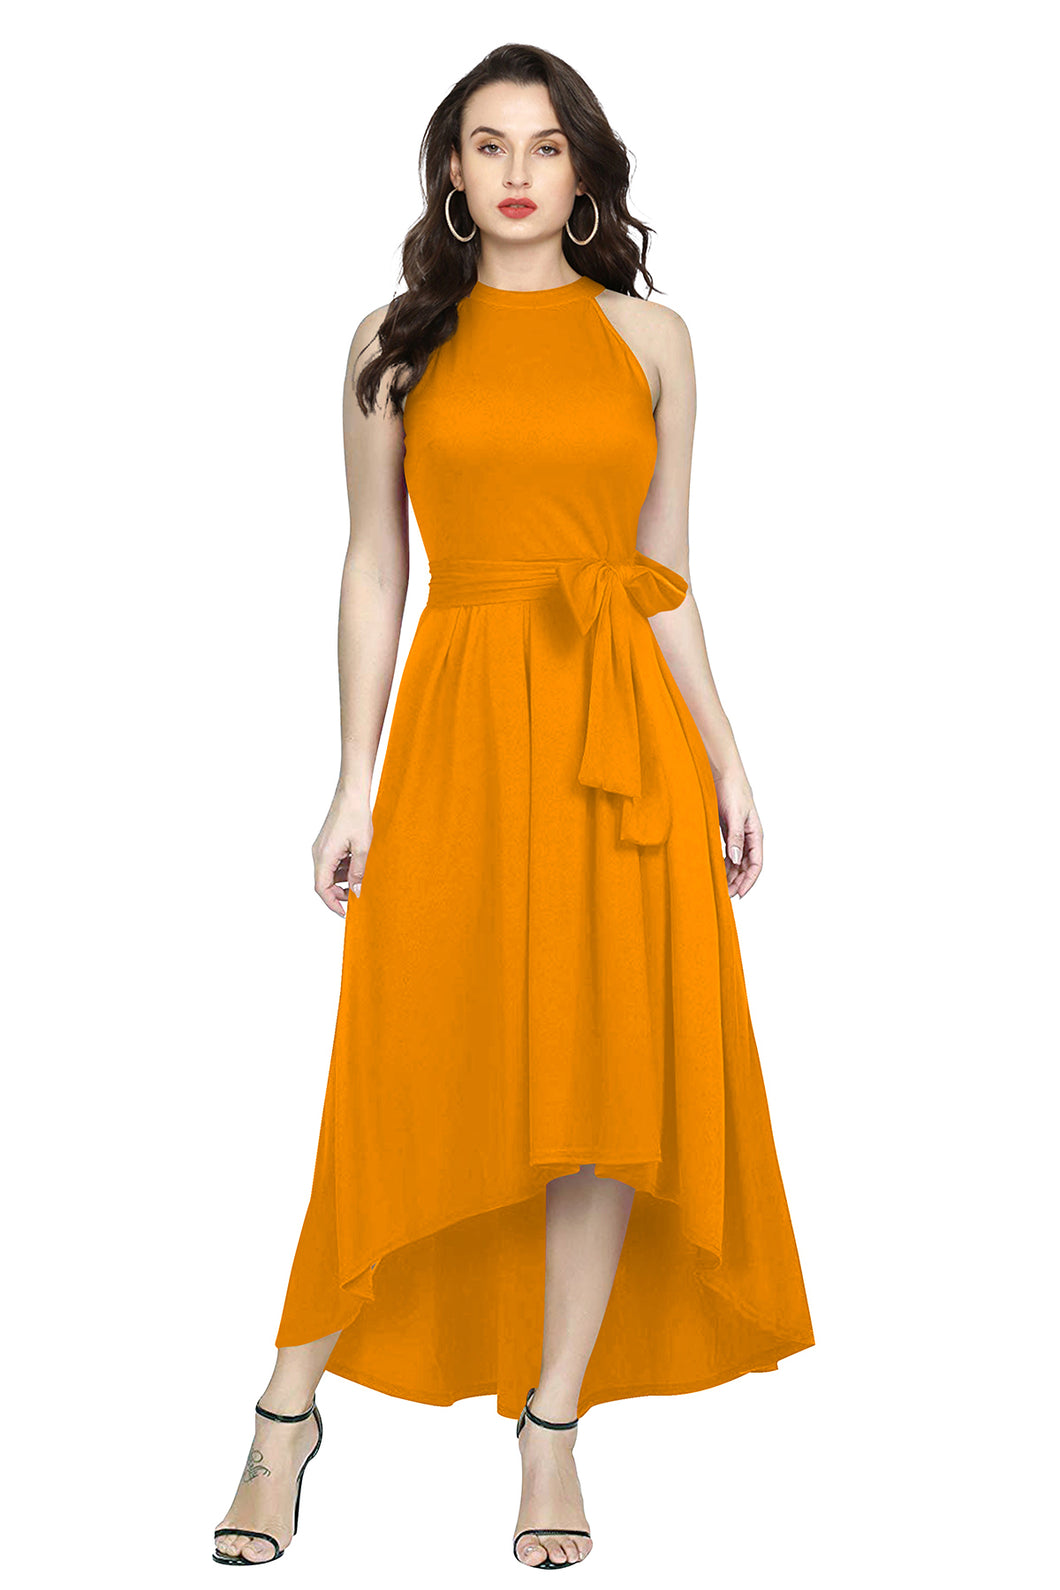 Halter's Neck Hi-Low Belt style dress - ForHar Closet